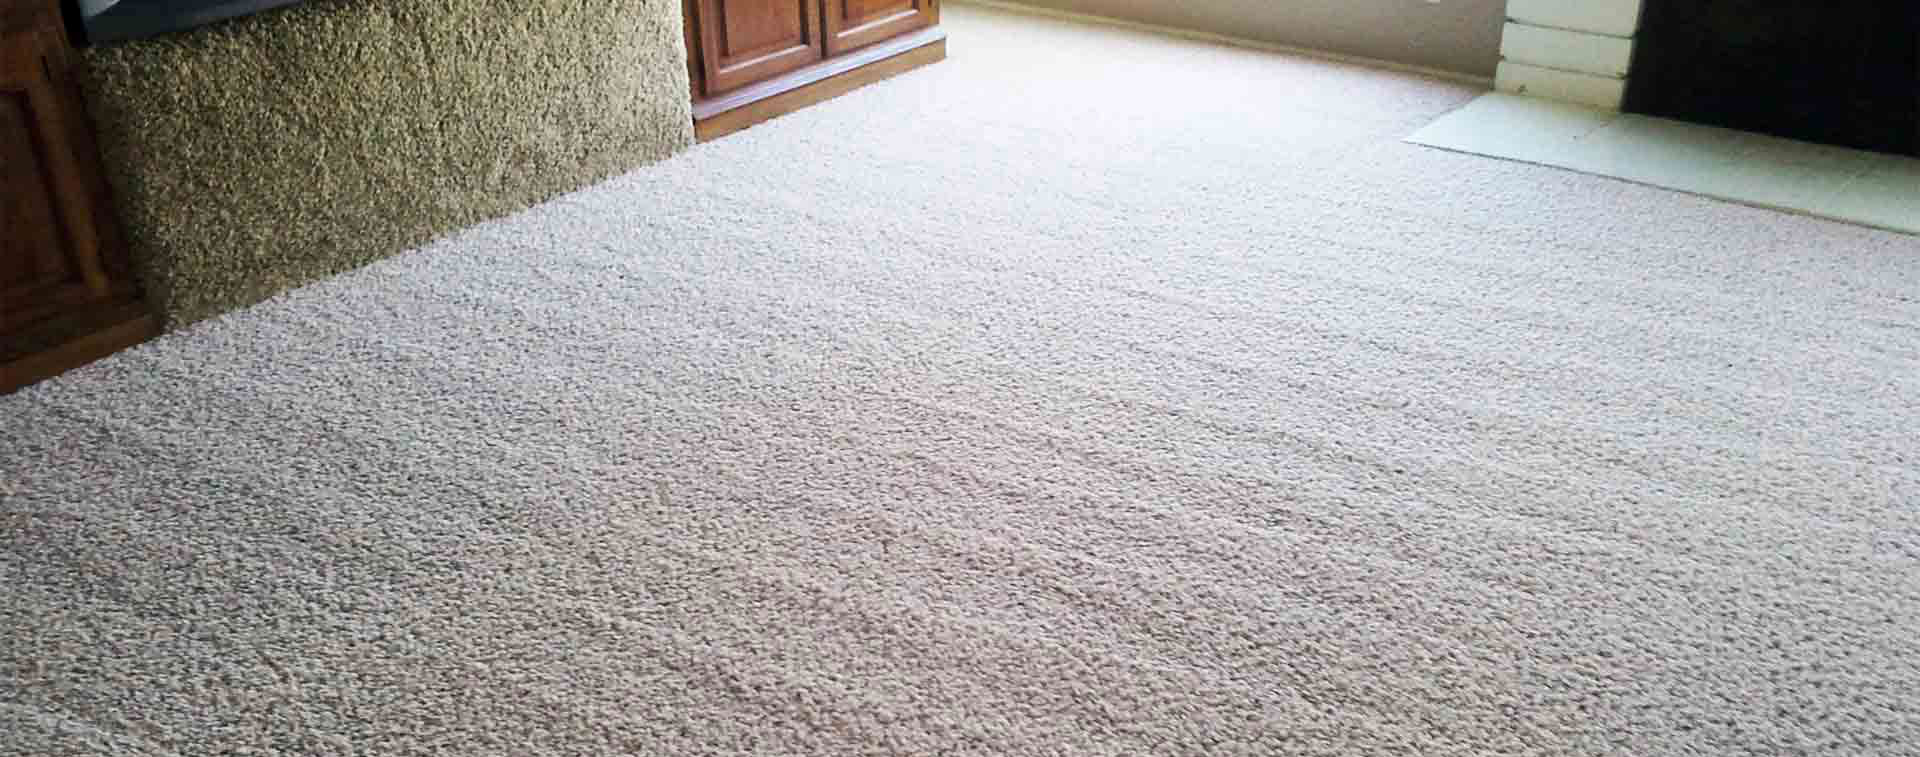 Carpet Cleaning Rouse Hill